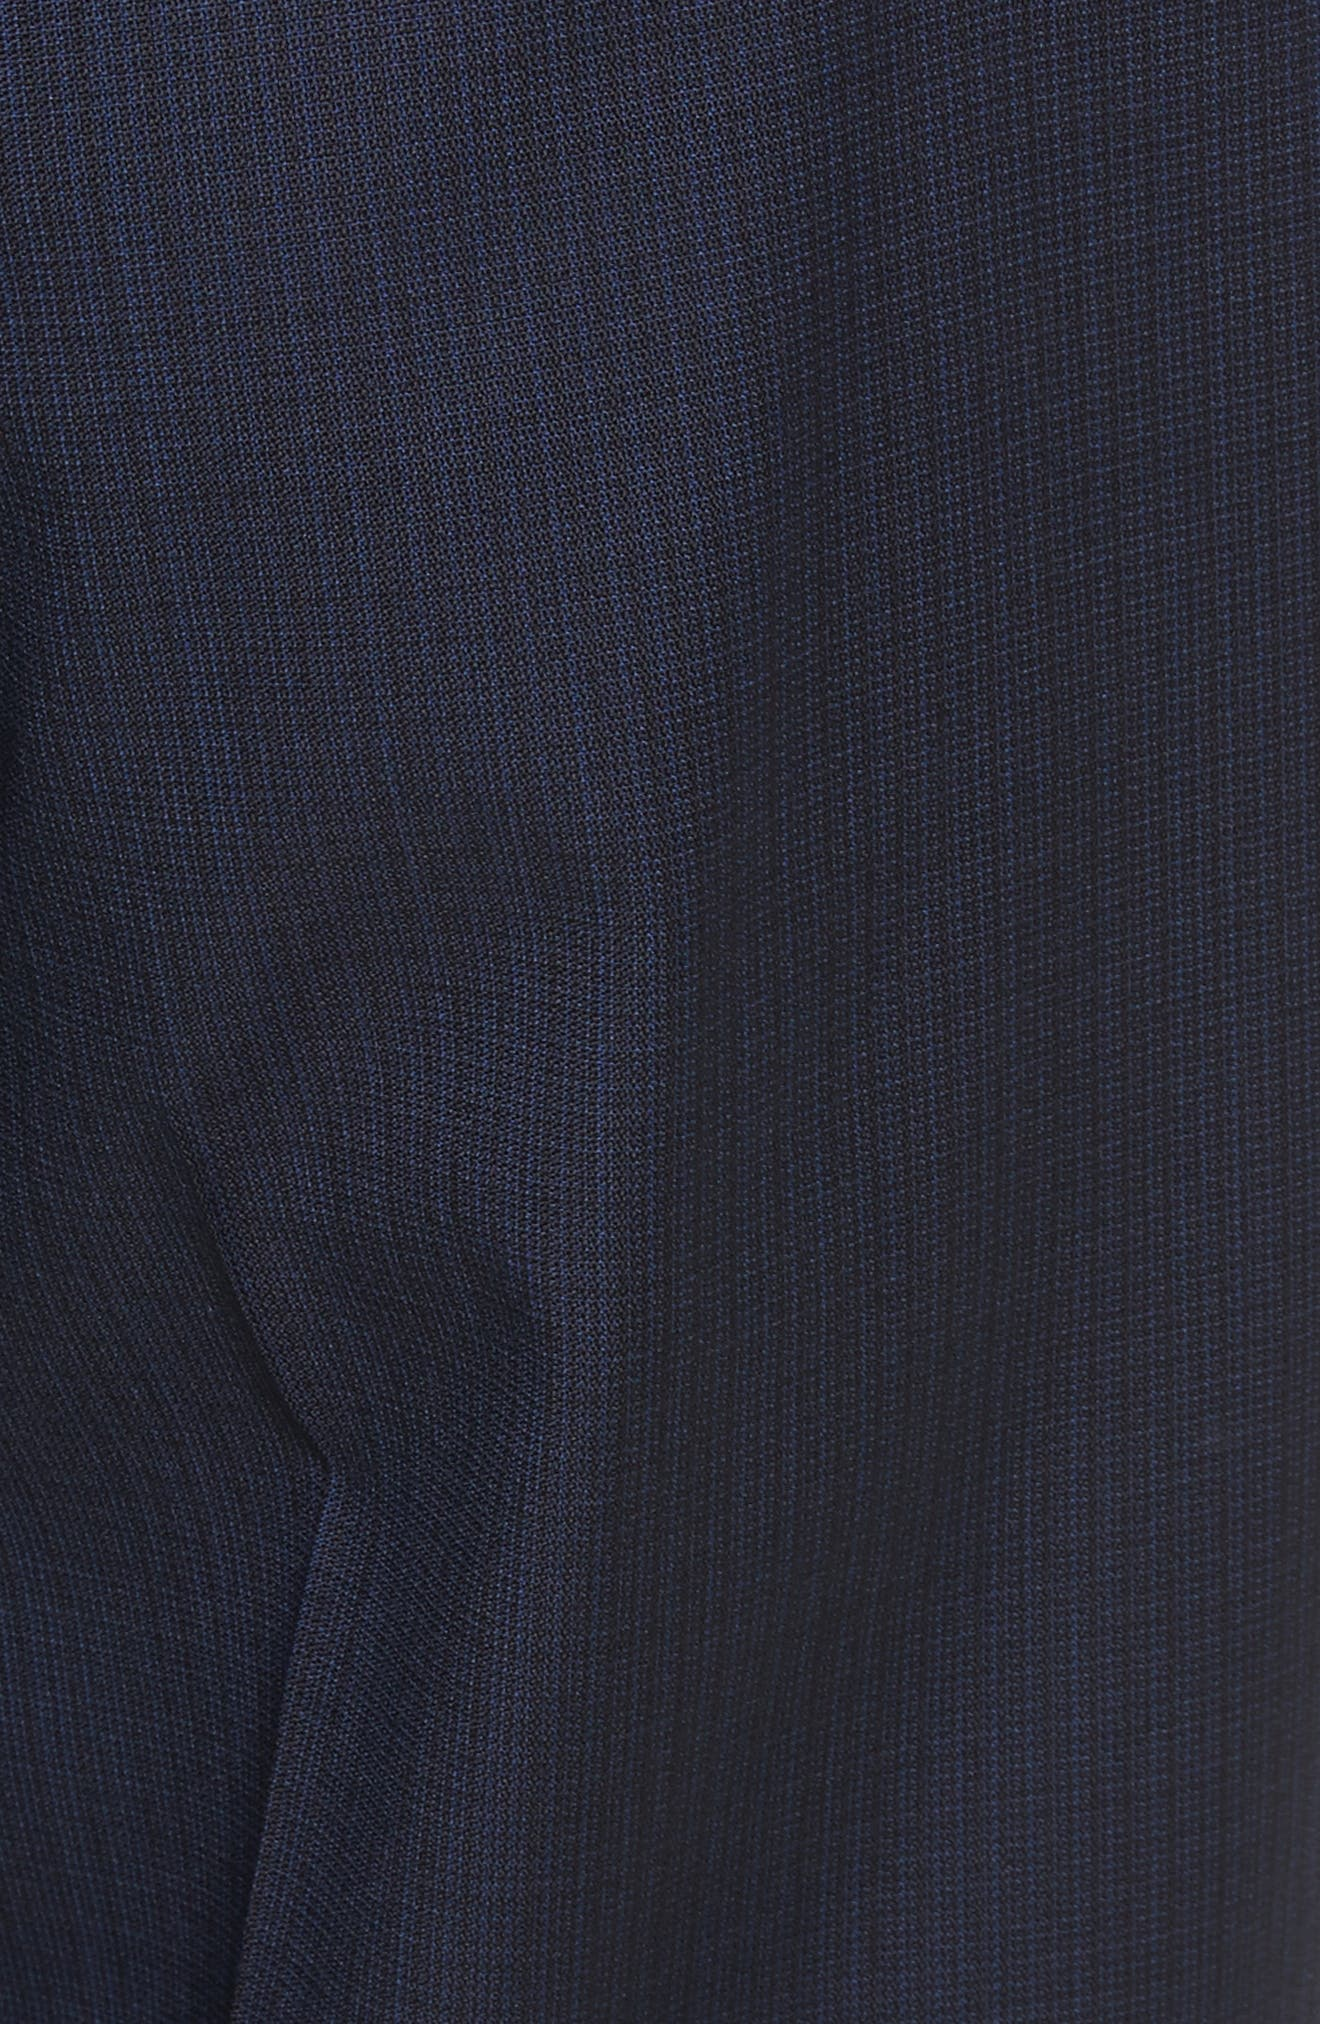 Flat Front Check Wool Trousers,                             Alternate thumbnail 2, color,                             410